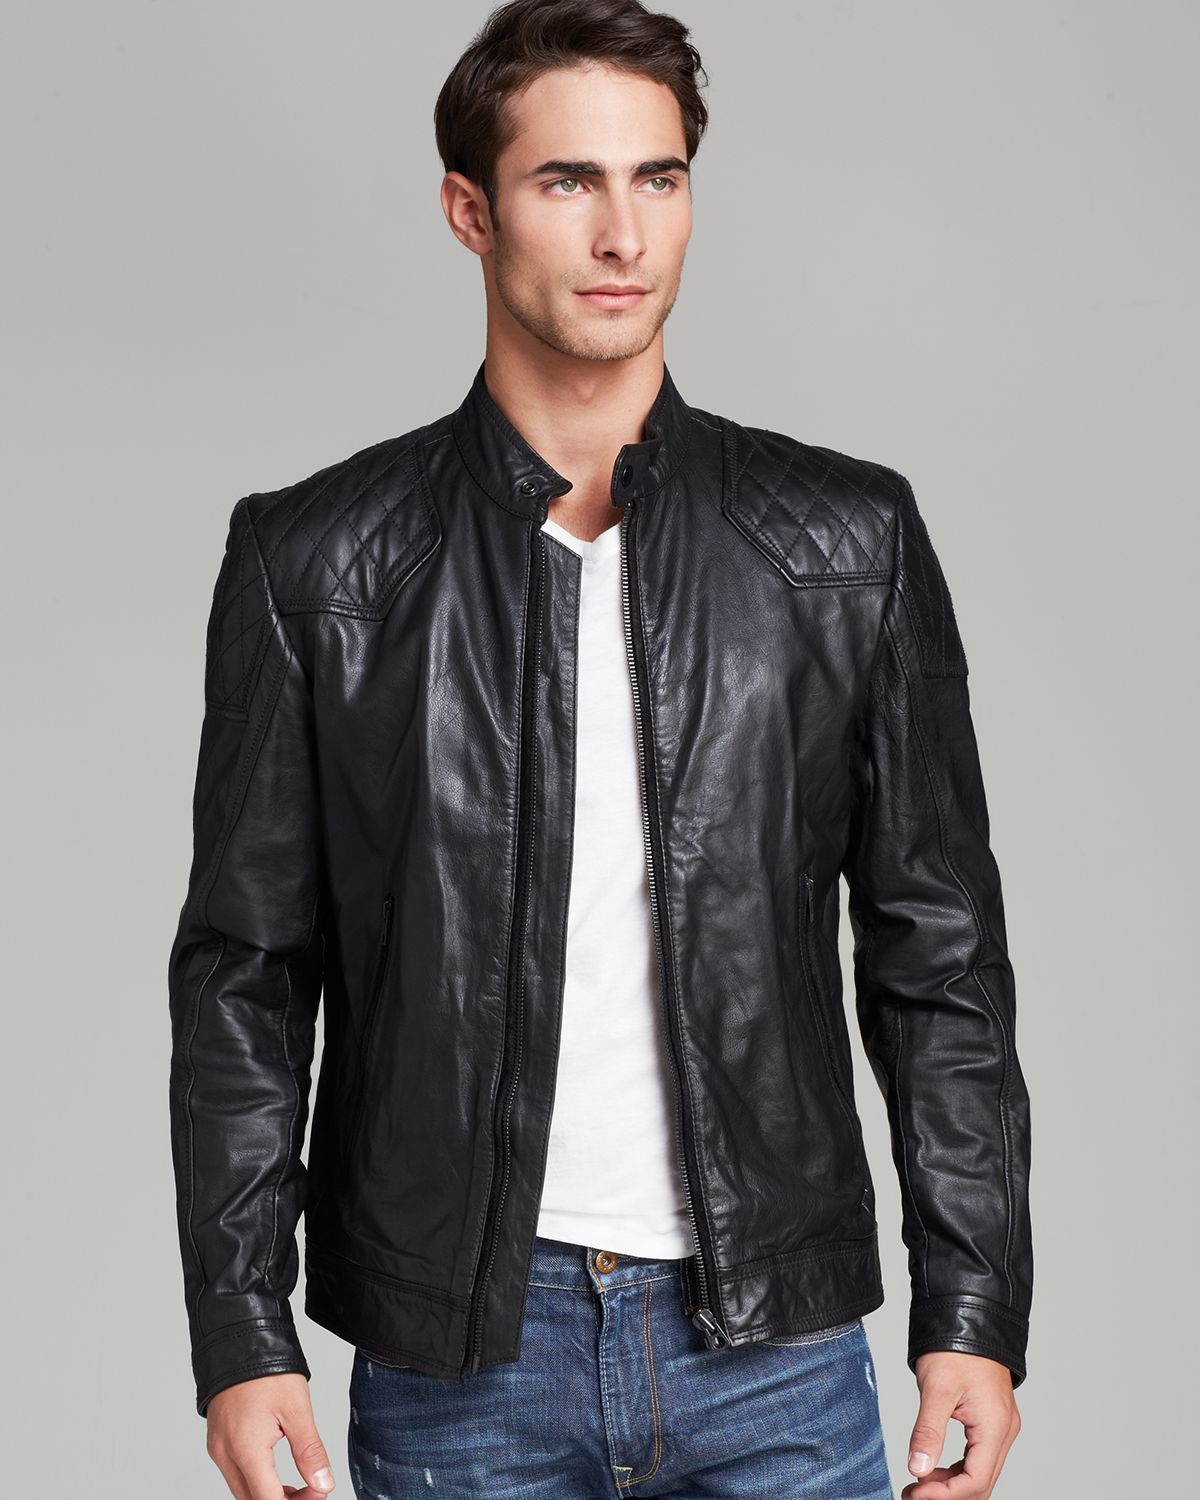 Diesel leather jacket mens – Modern fashion jacket photo blog